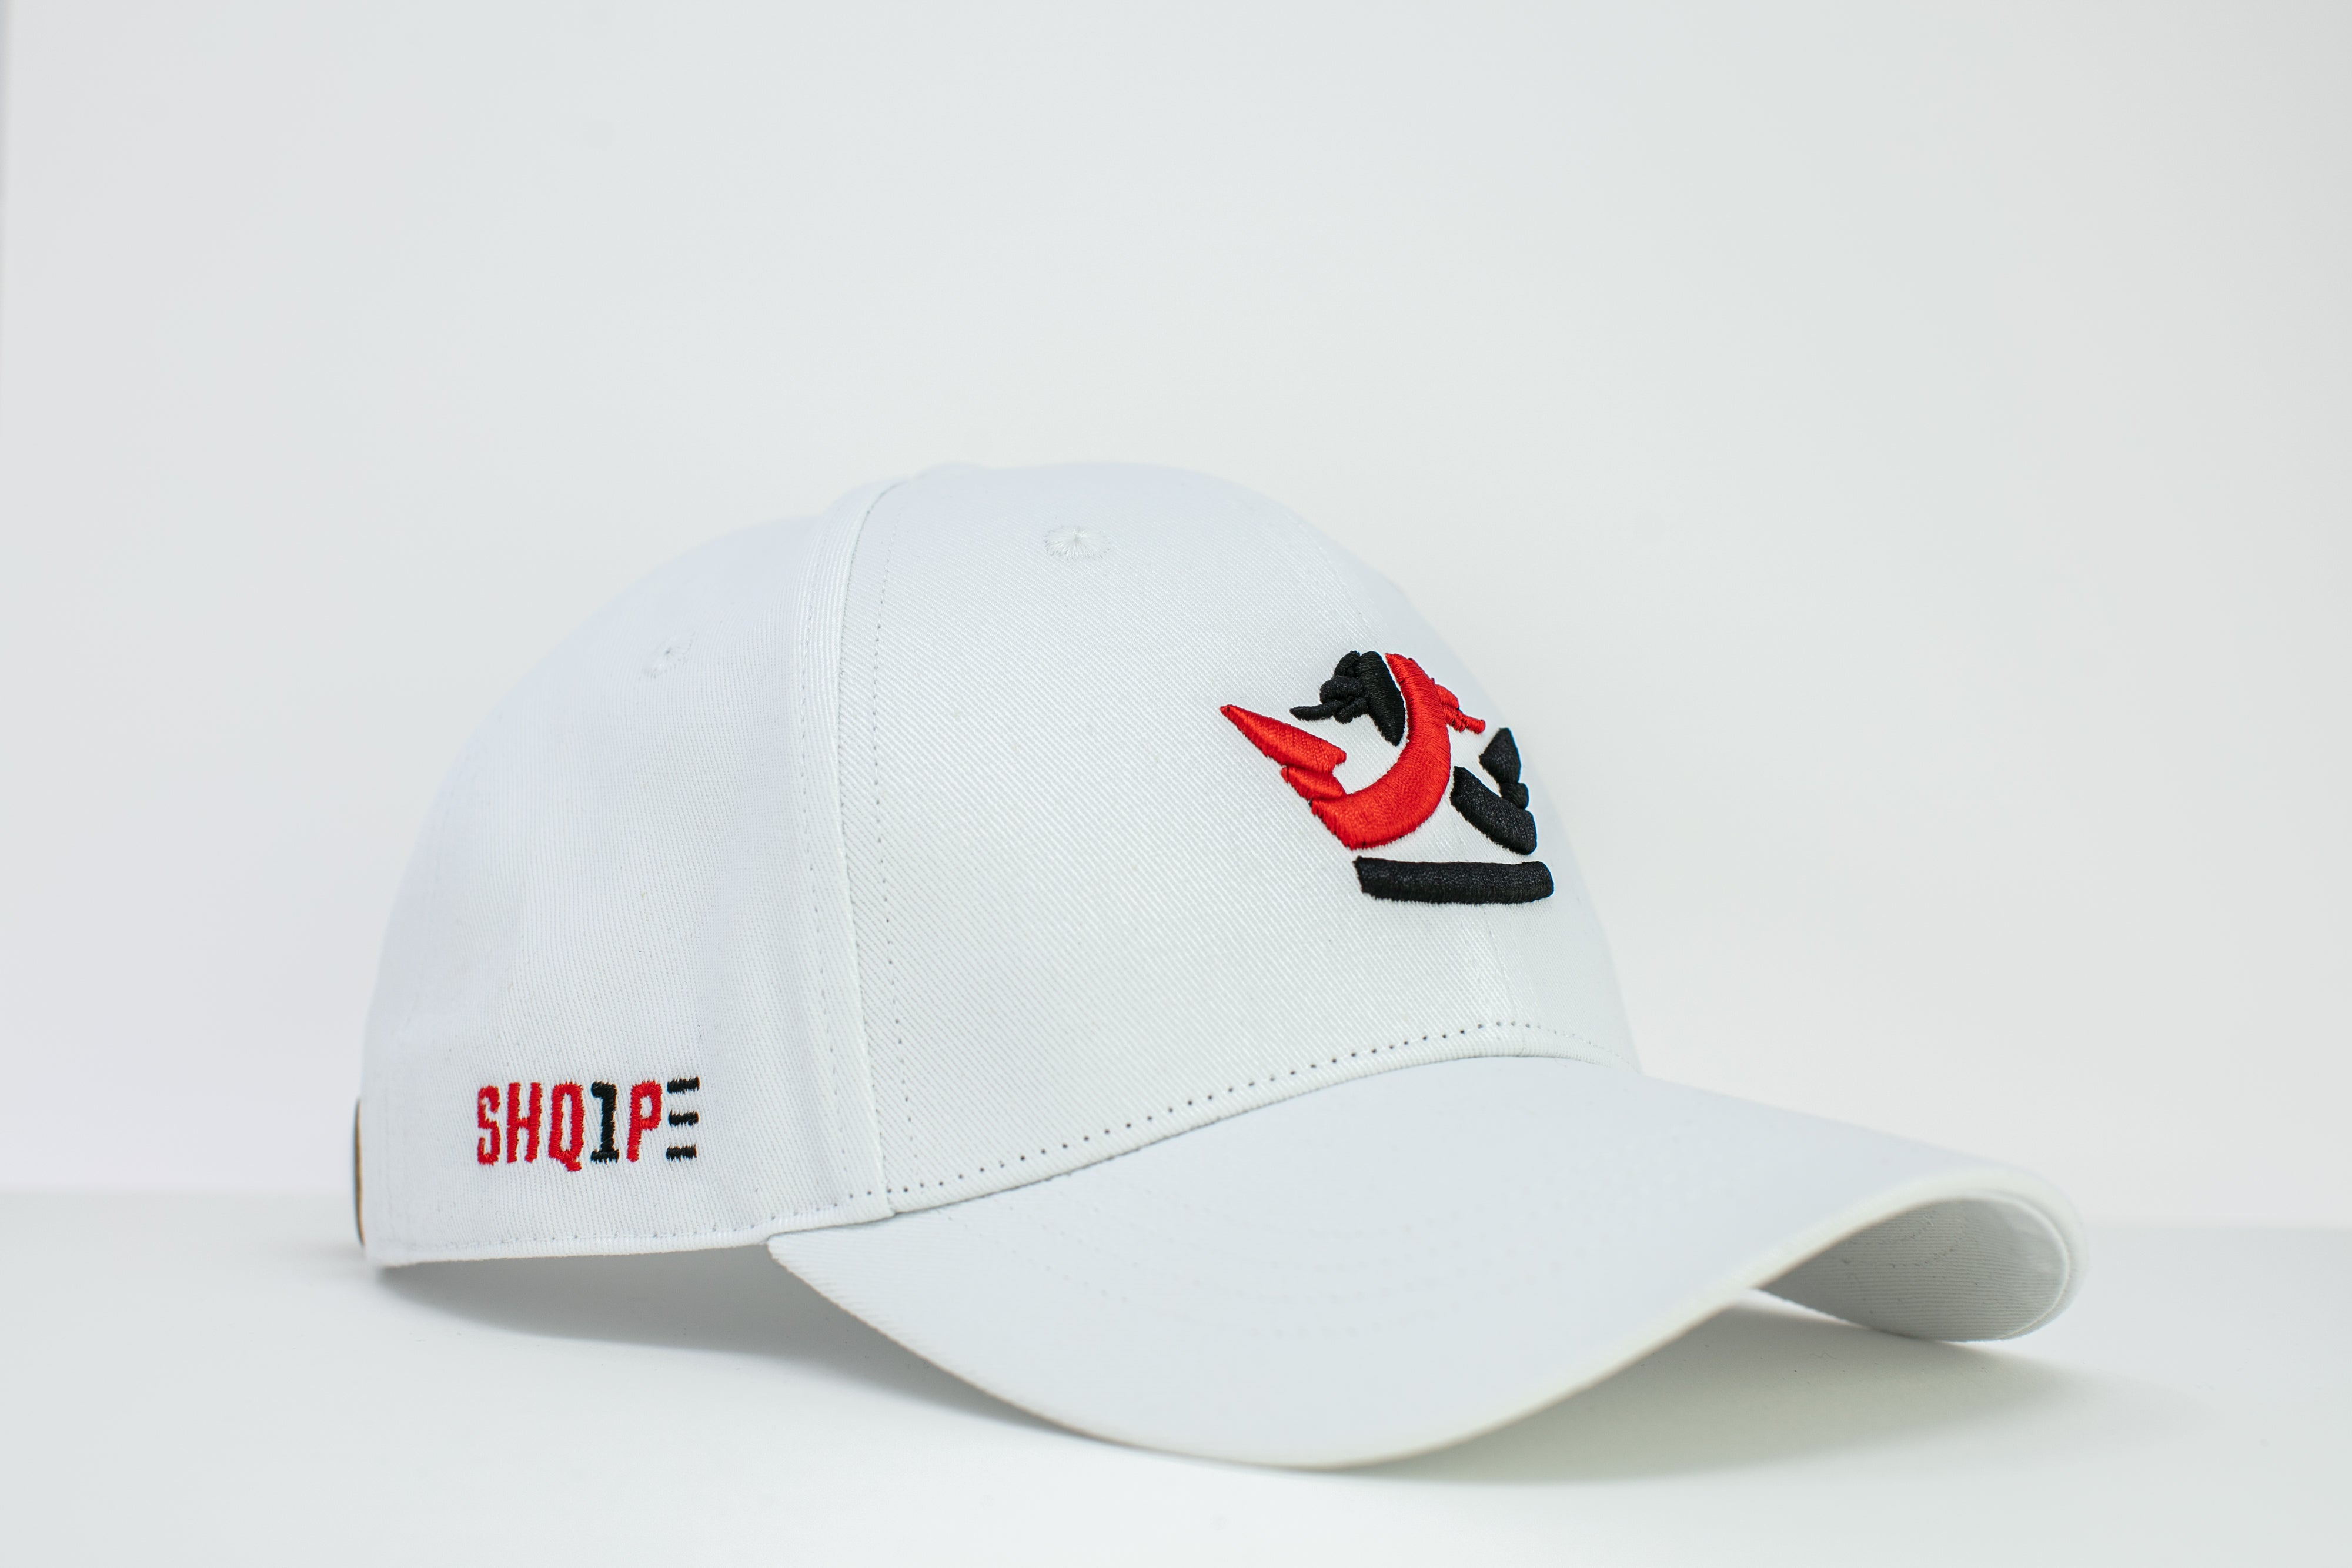 1st Edition Shq1pe Baseball Cap White/Red & Black